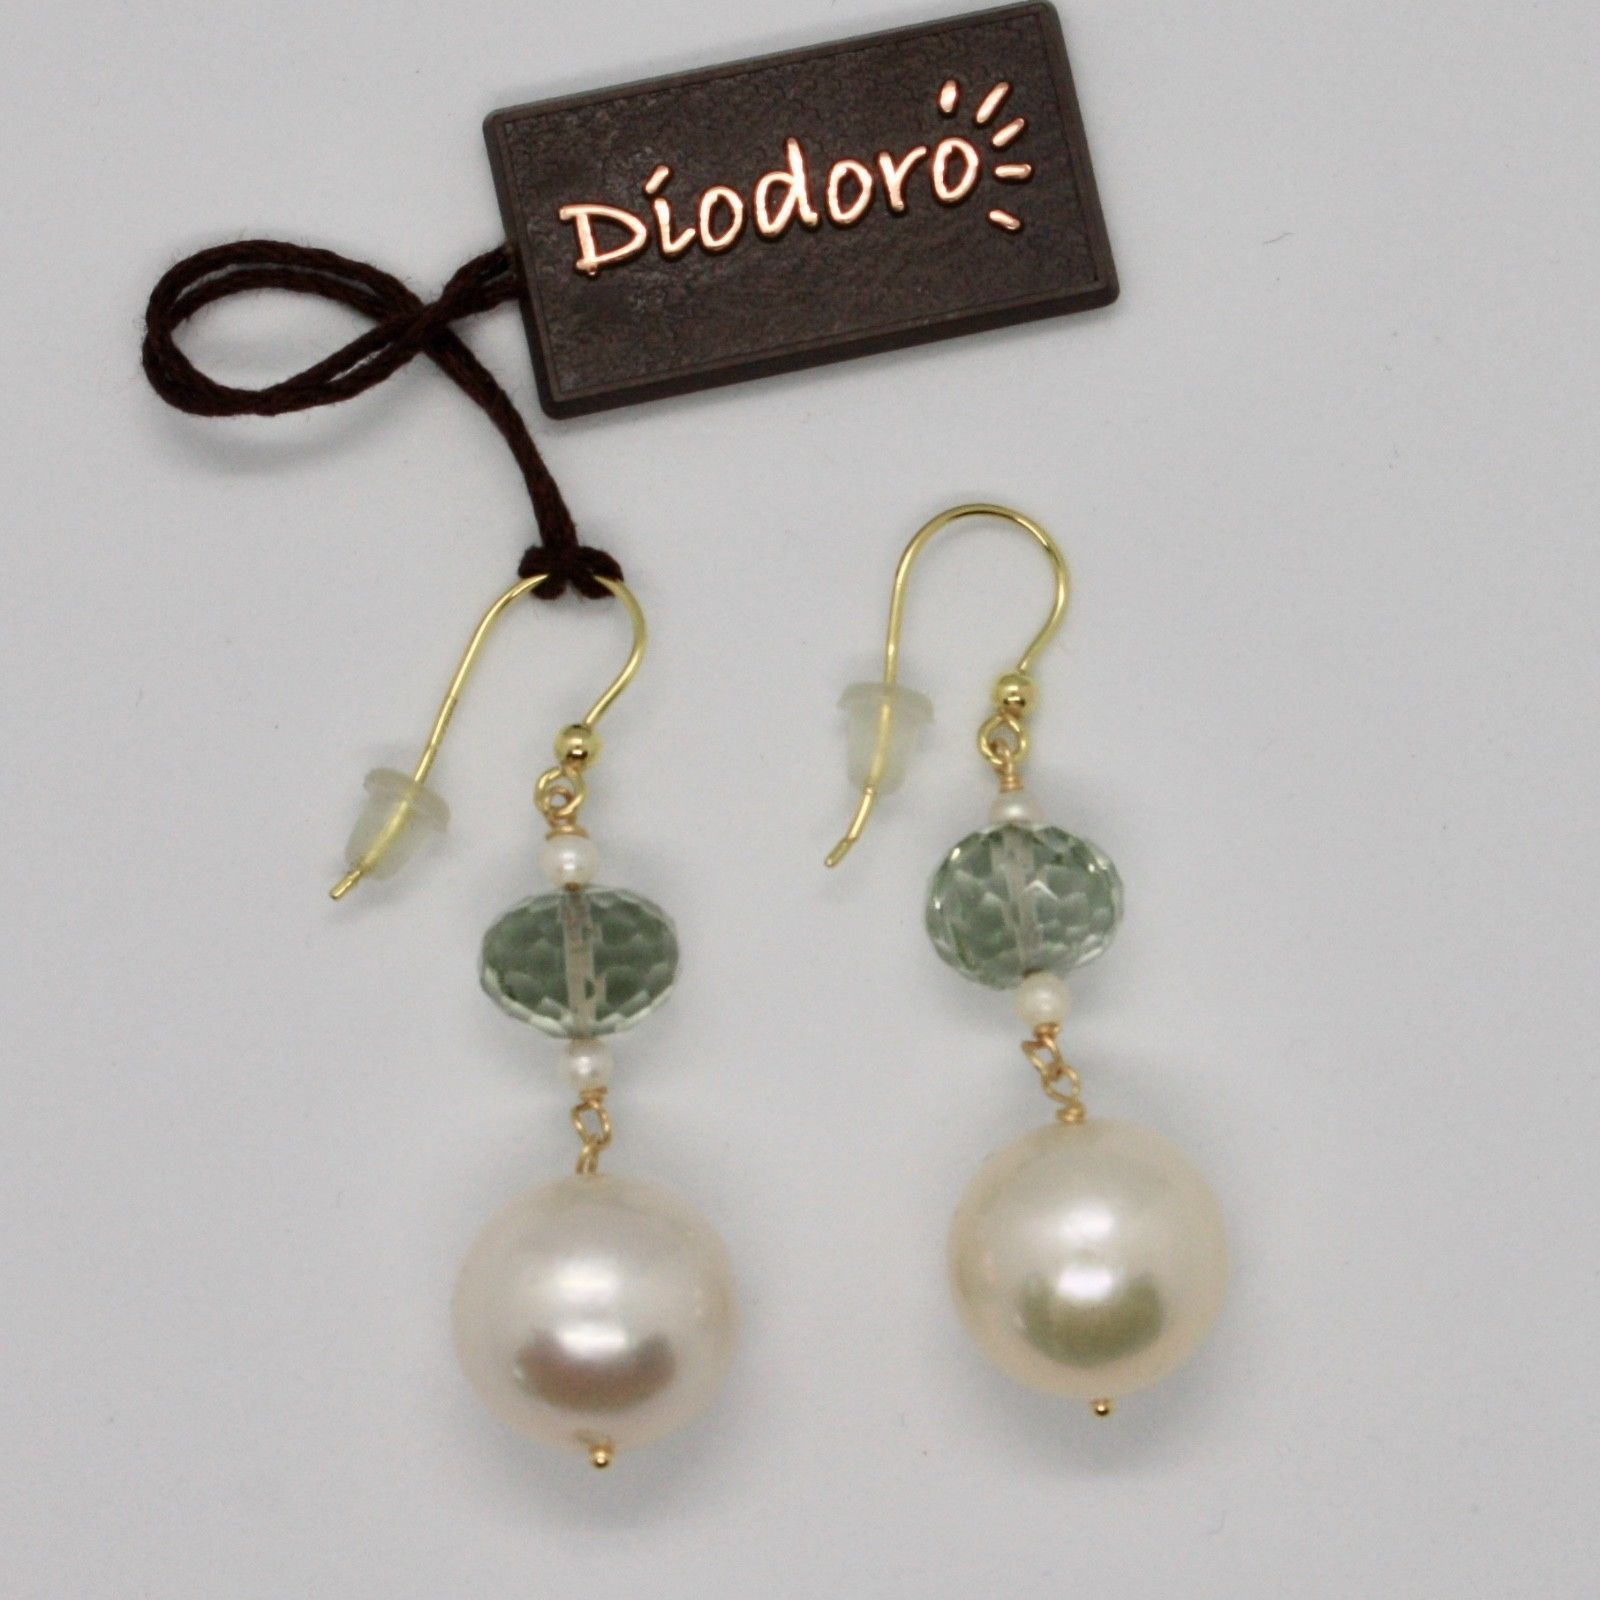 YELLOW GOLD EARRINGS 18K 750 PEARLS OF WATER DOLCE AND PRASIOLITE MADE IN ITALY